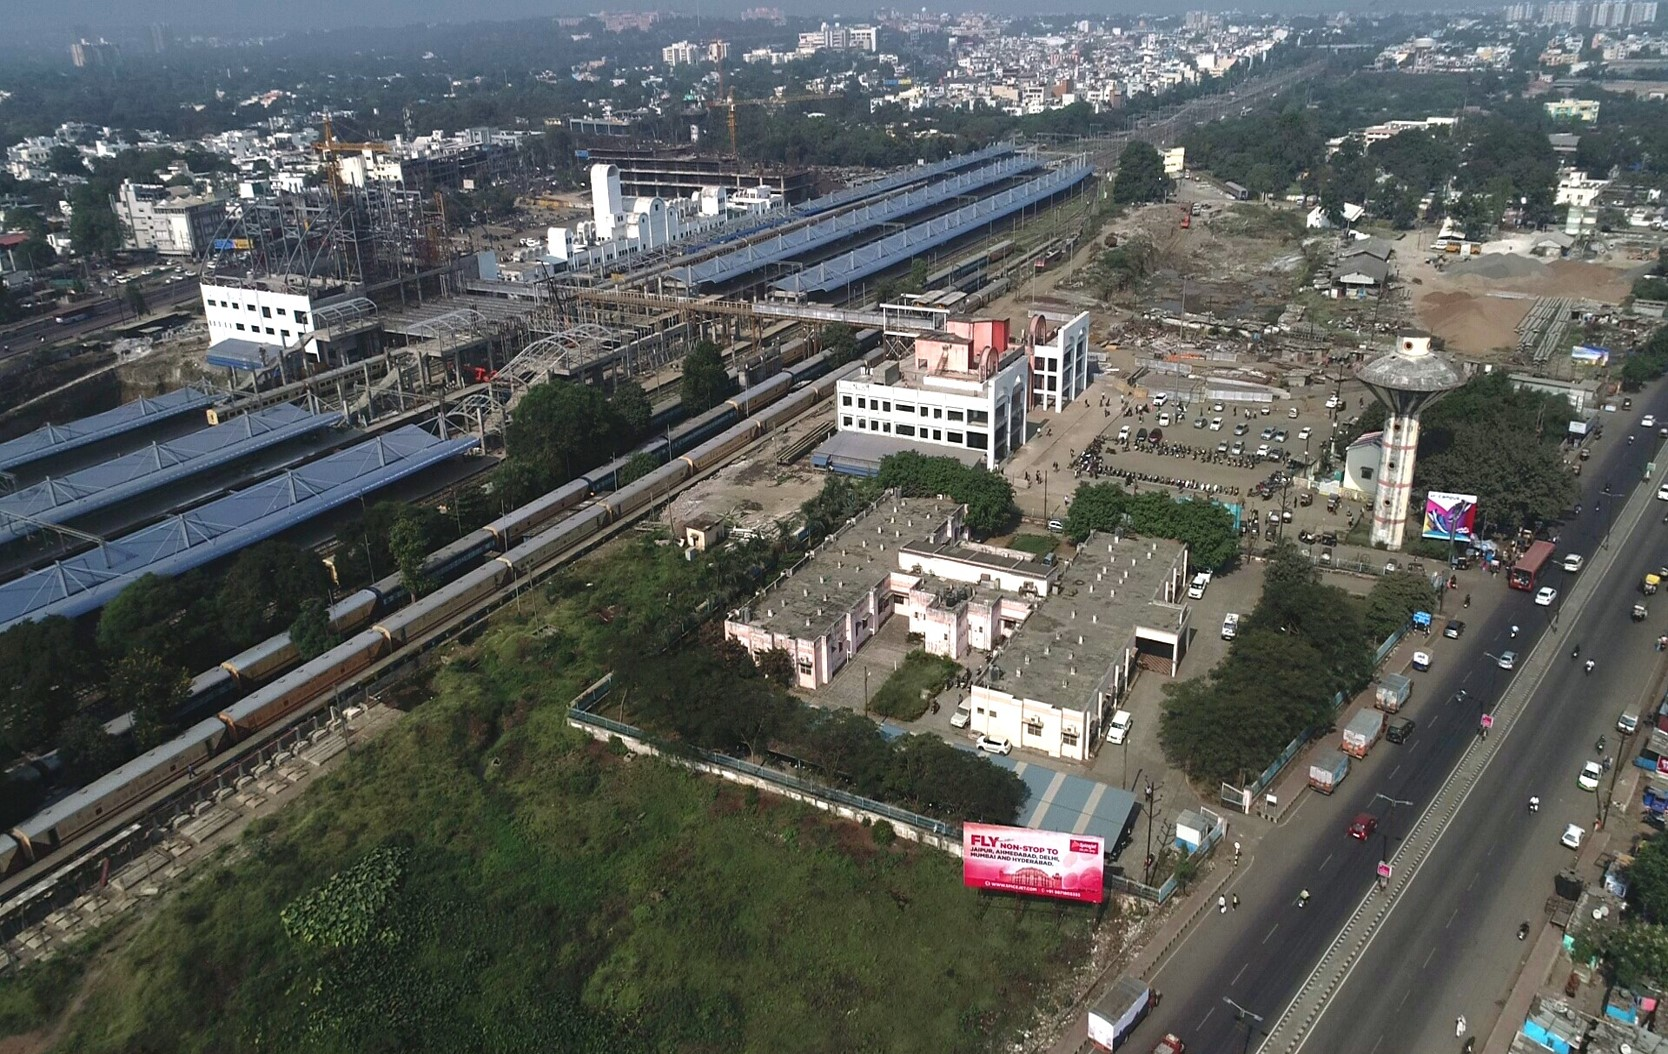 East building, new west building and Air Concourse at Habibganj Railway Station